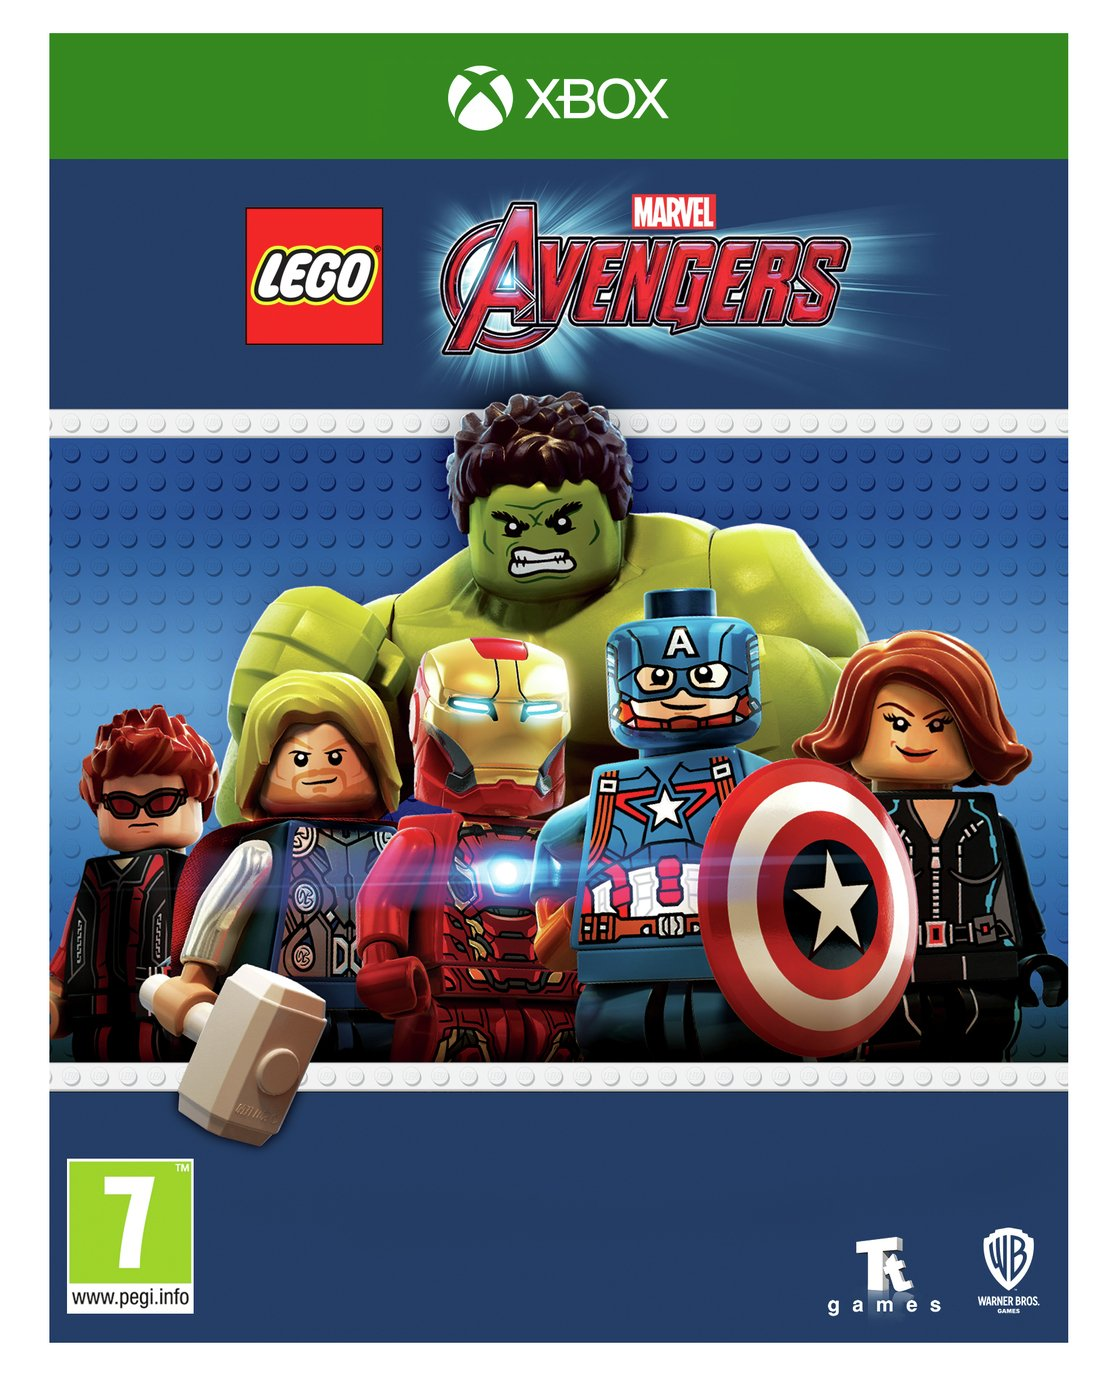 LEGO Avengers Game - Xbox One from LEGO